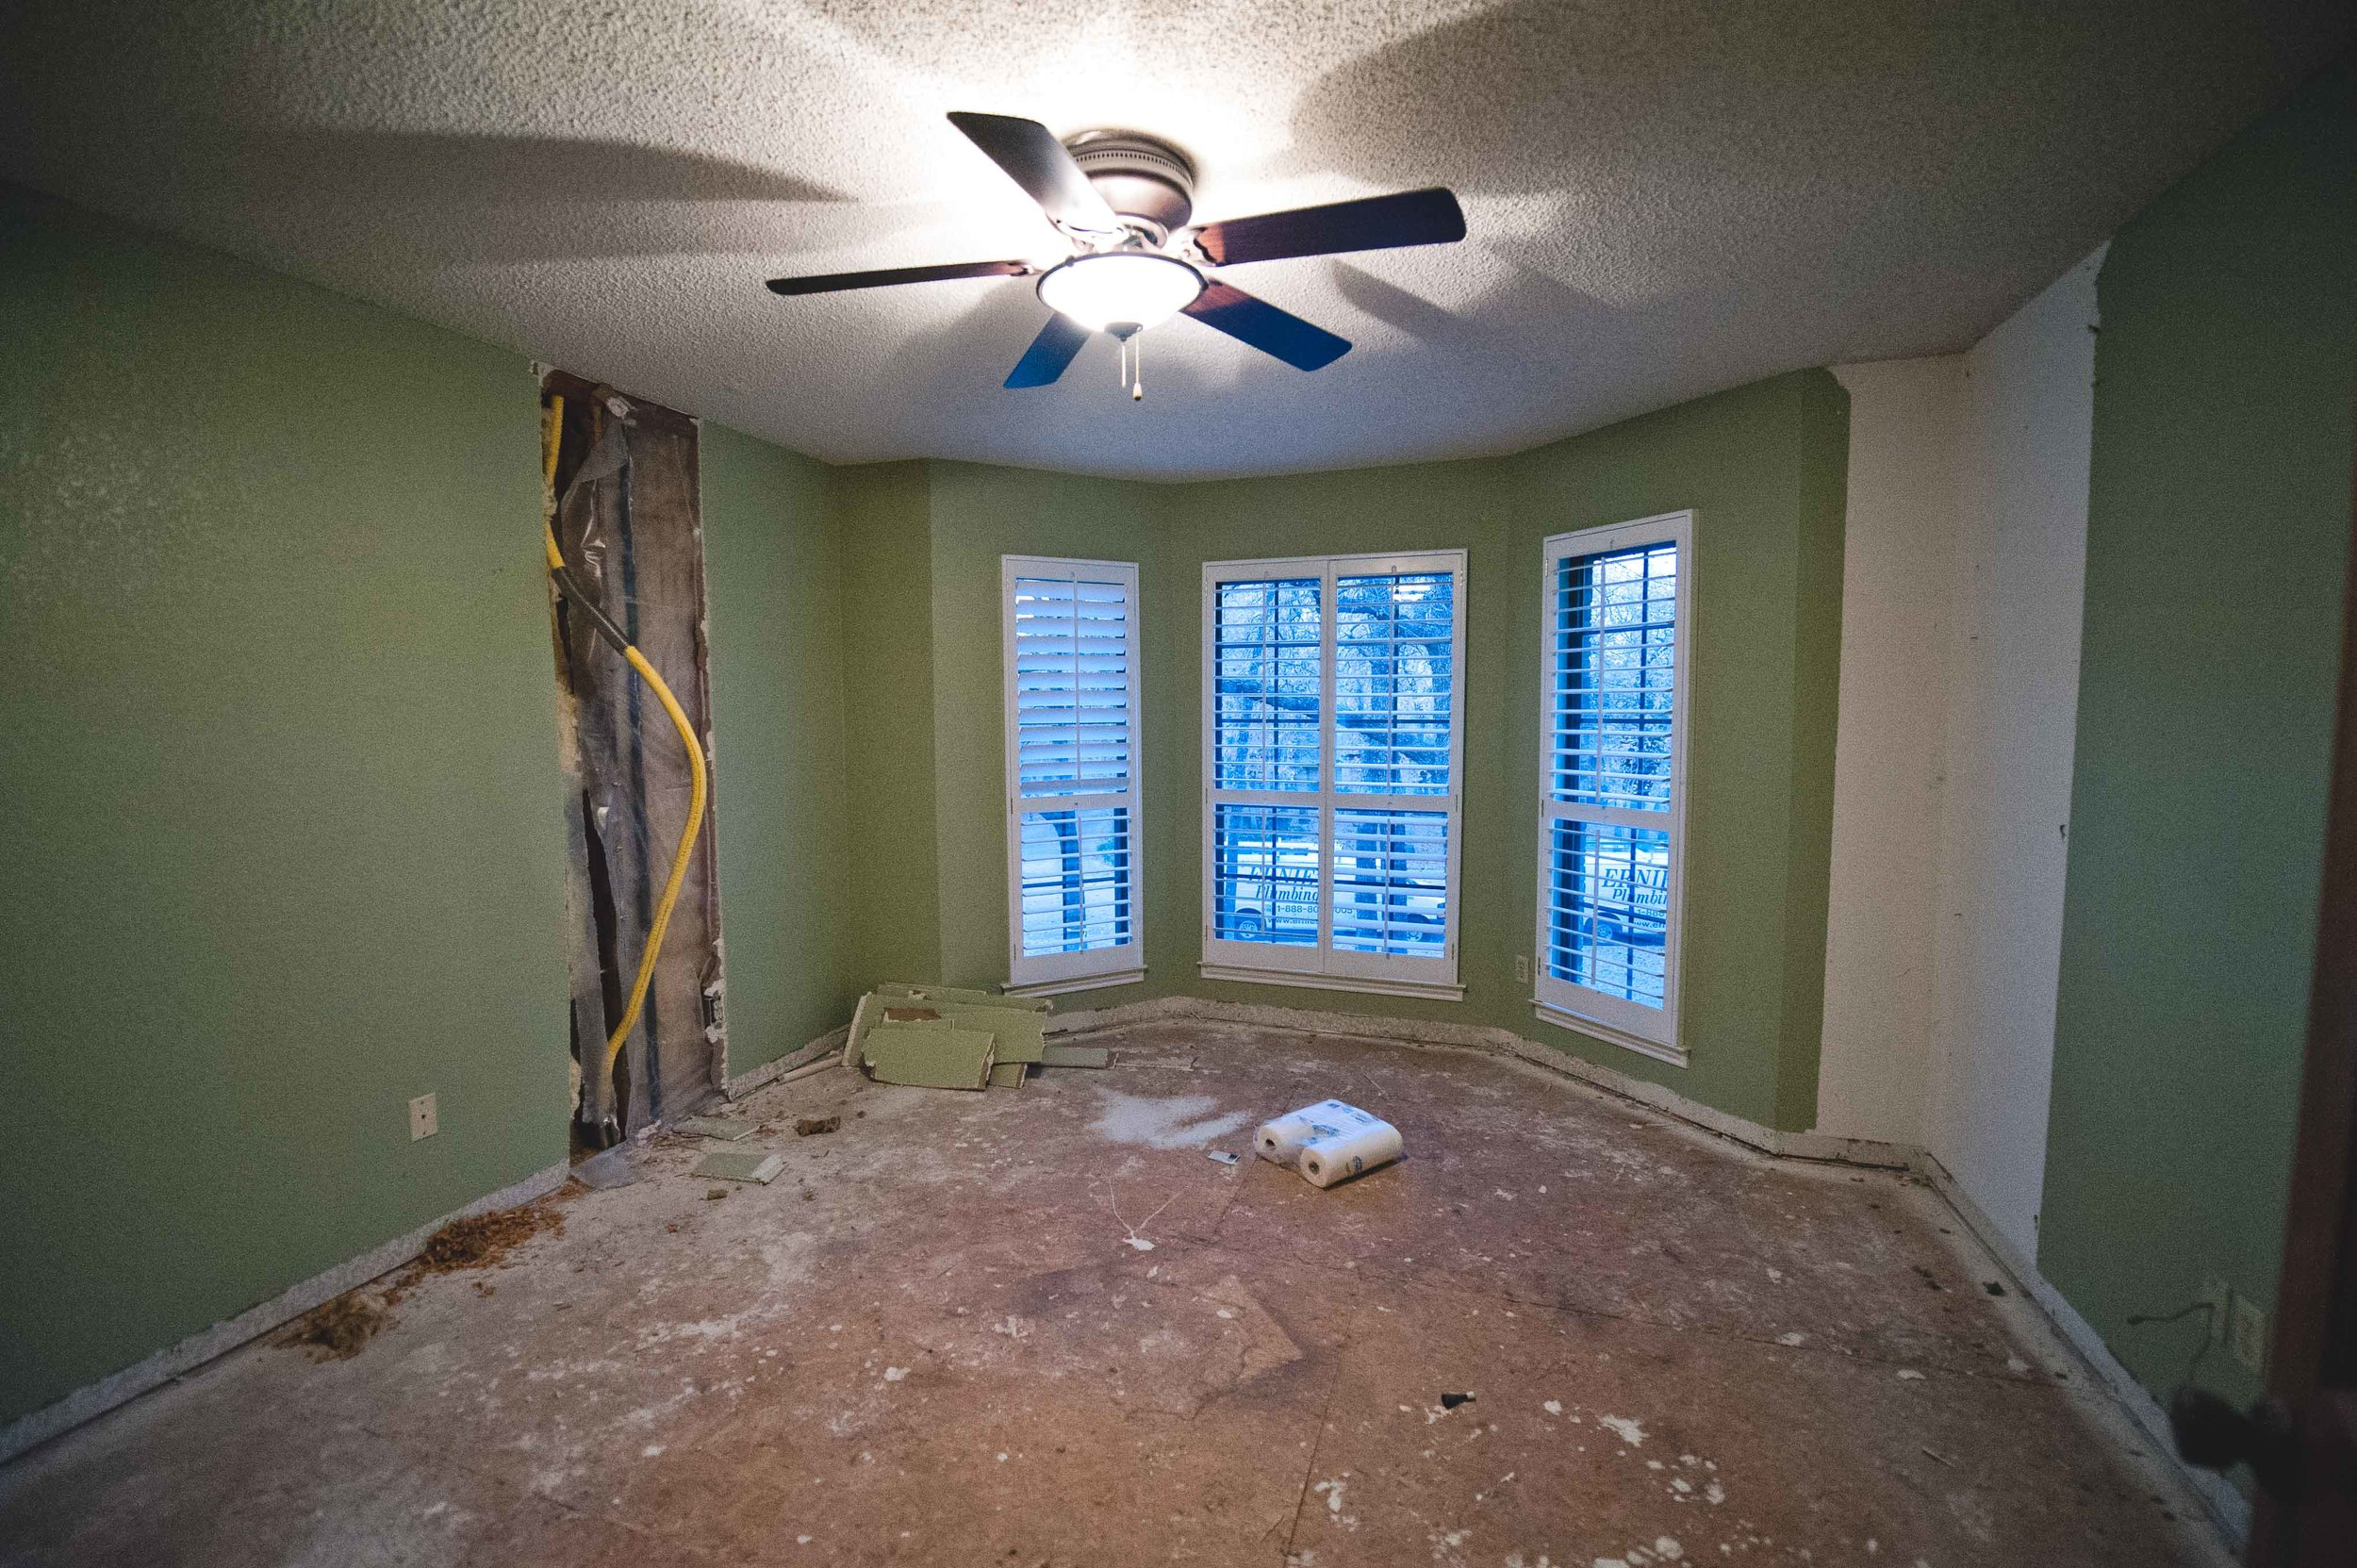 During: Another built-in bit the dust.  And oooh, you can really see the old popcorn ceilings in this image.